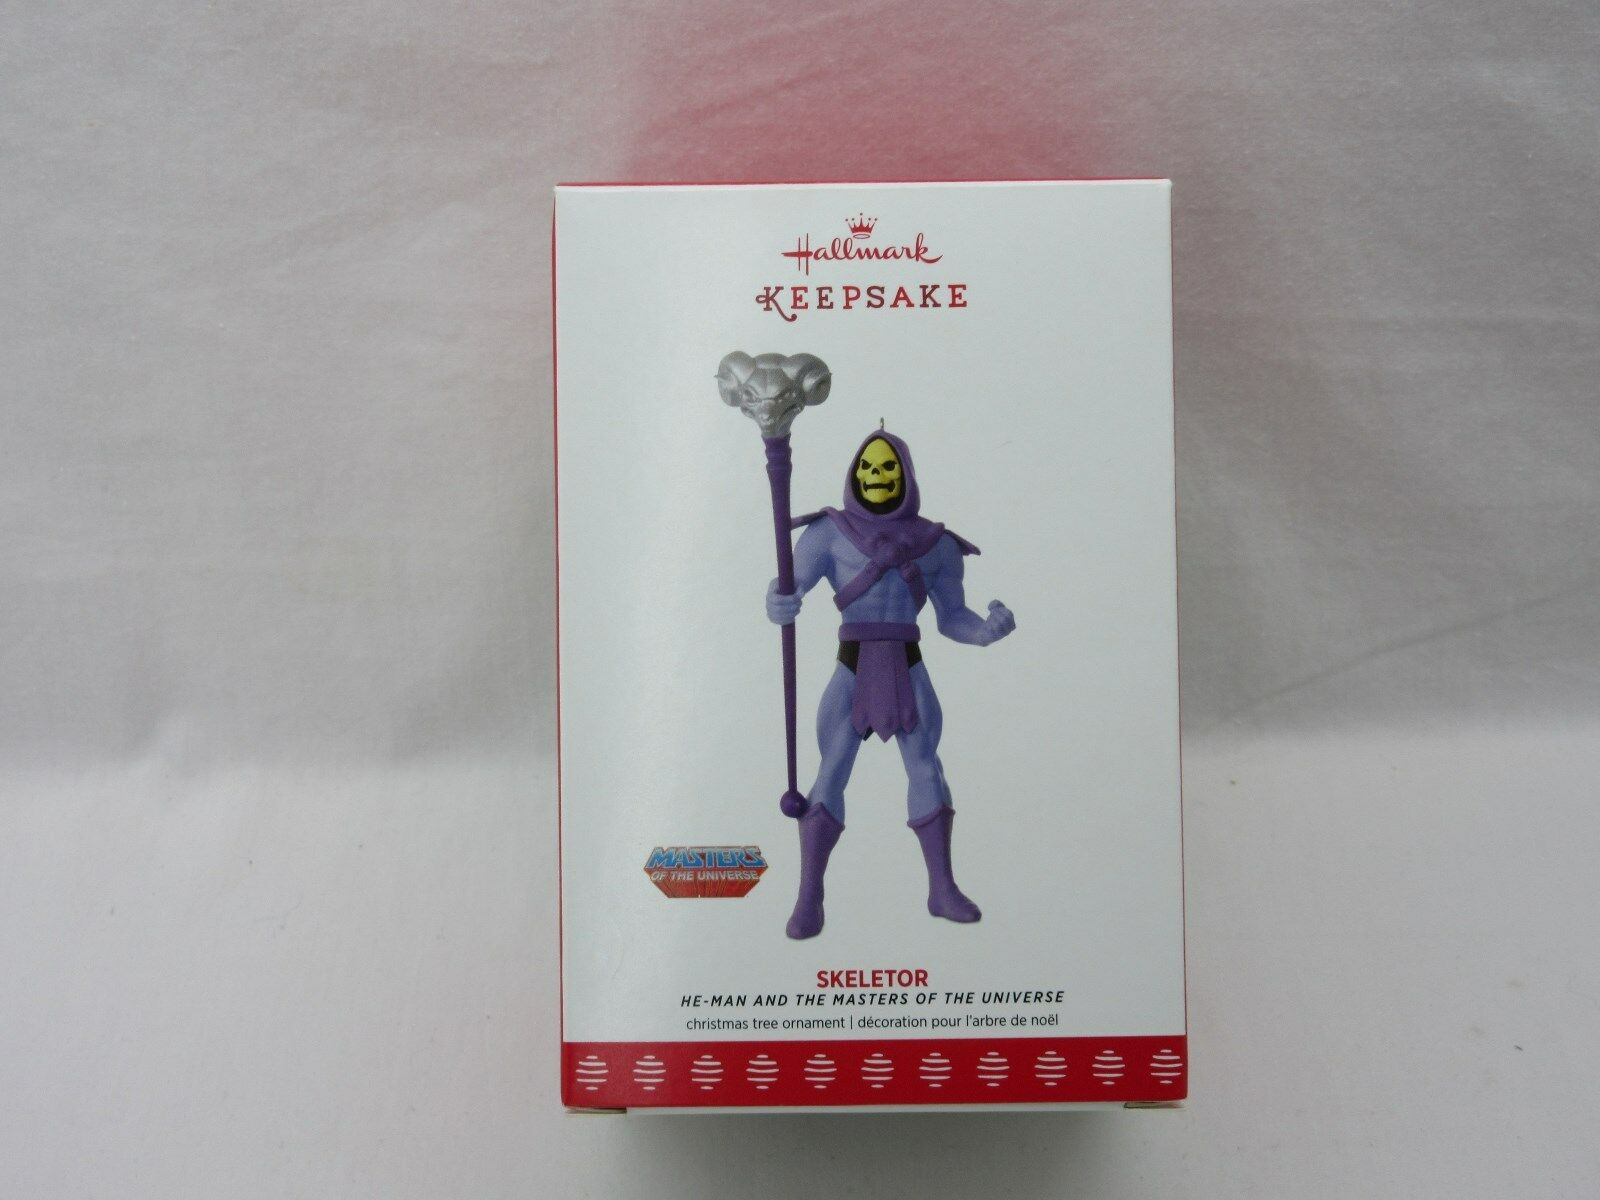 MOTU,SKELETOR ORNAUomoT,HALLMARK KEEPSAKE,MINT,Masters of the Universe,He Man